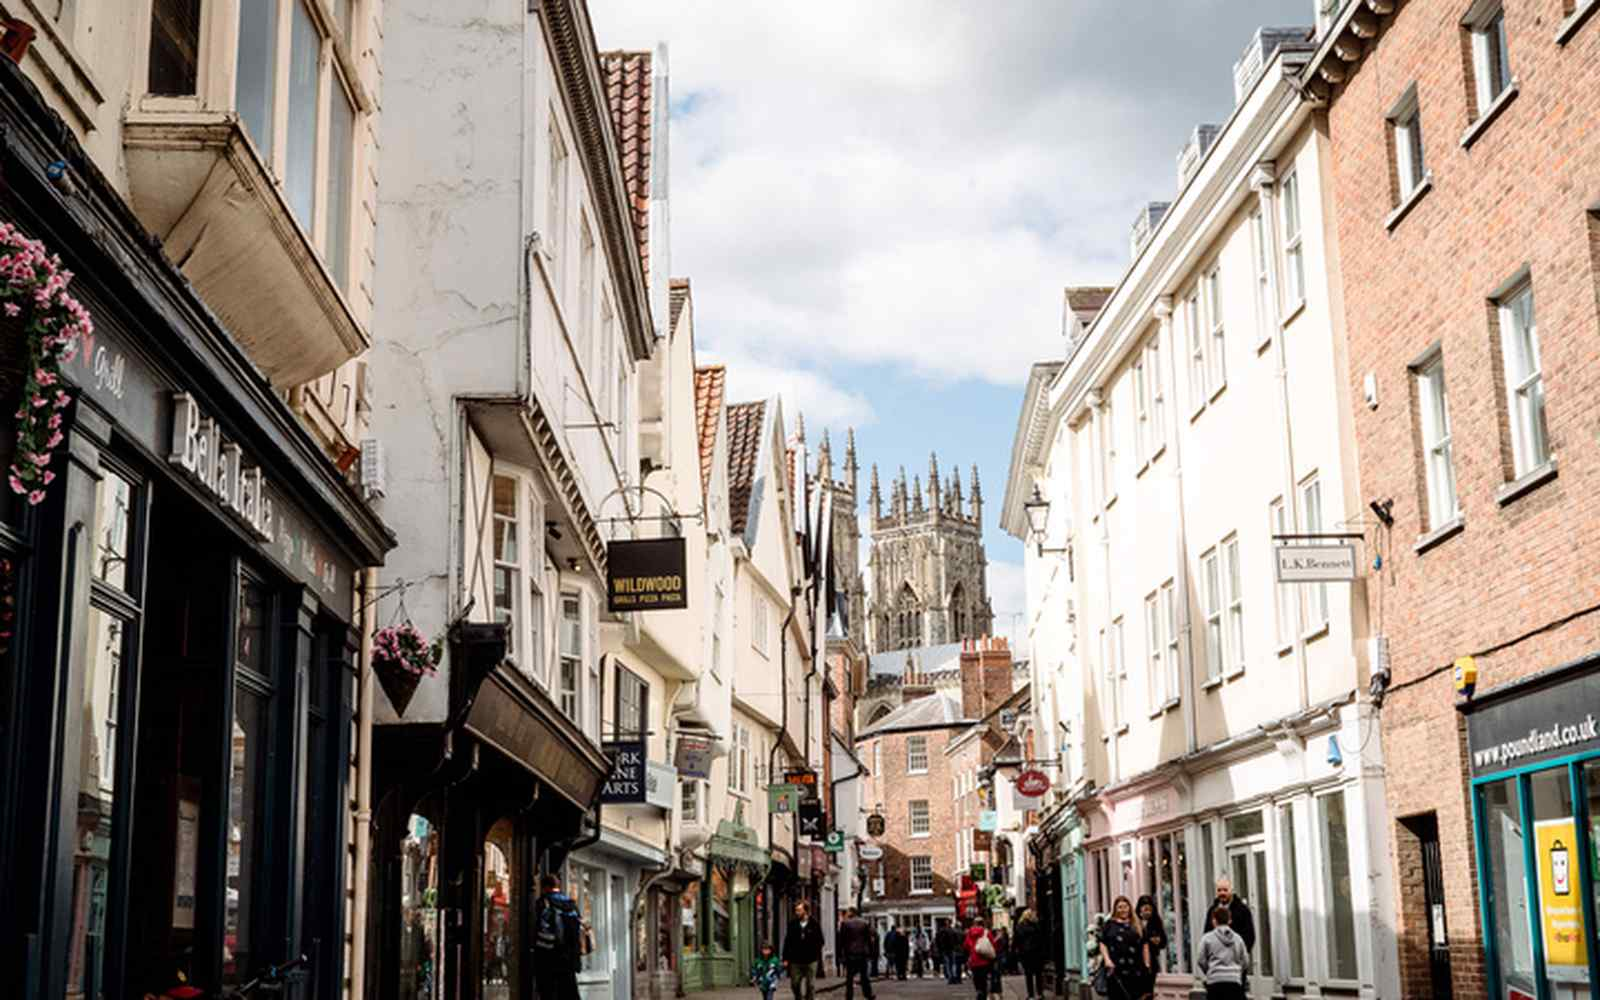 A street of shops with York Minster in the background